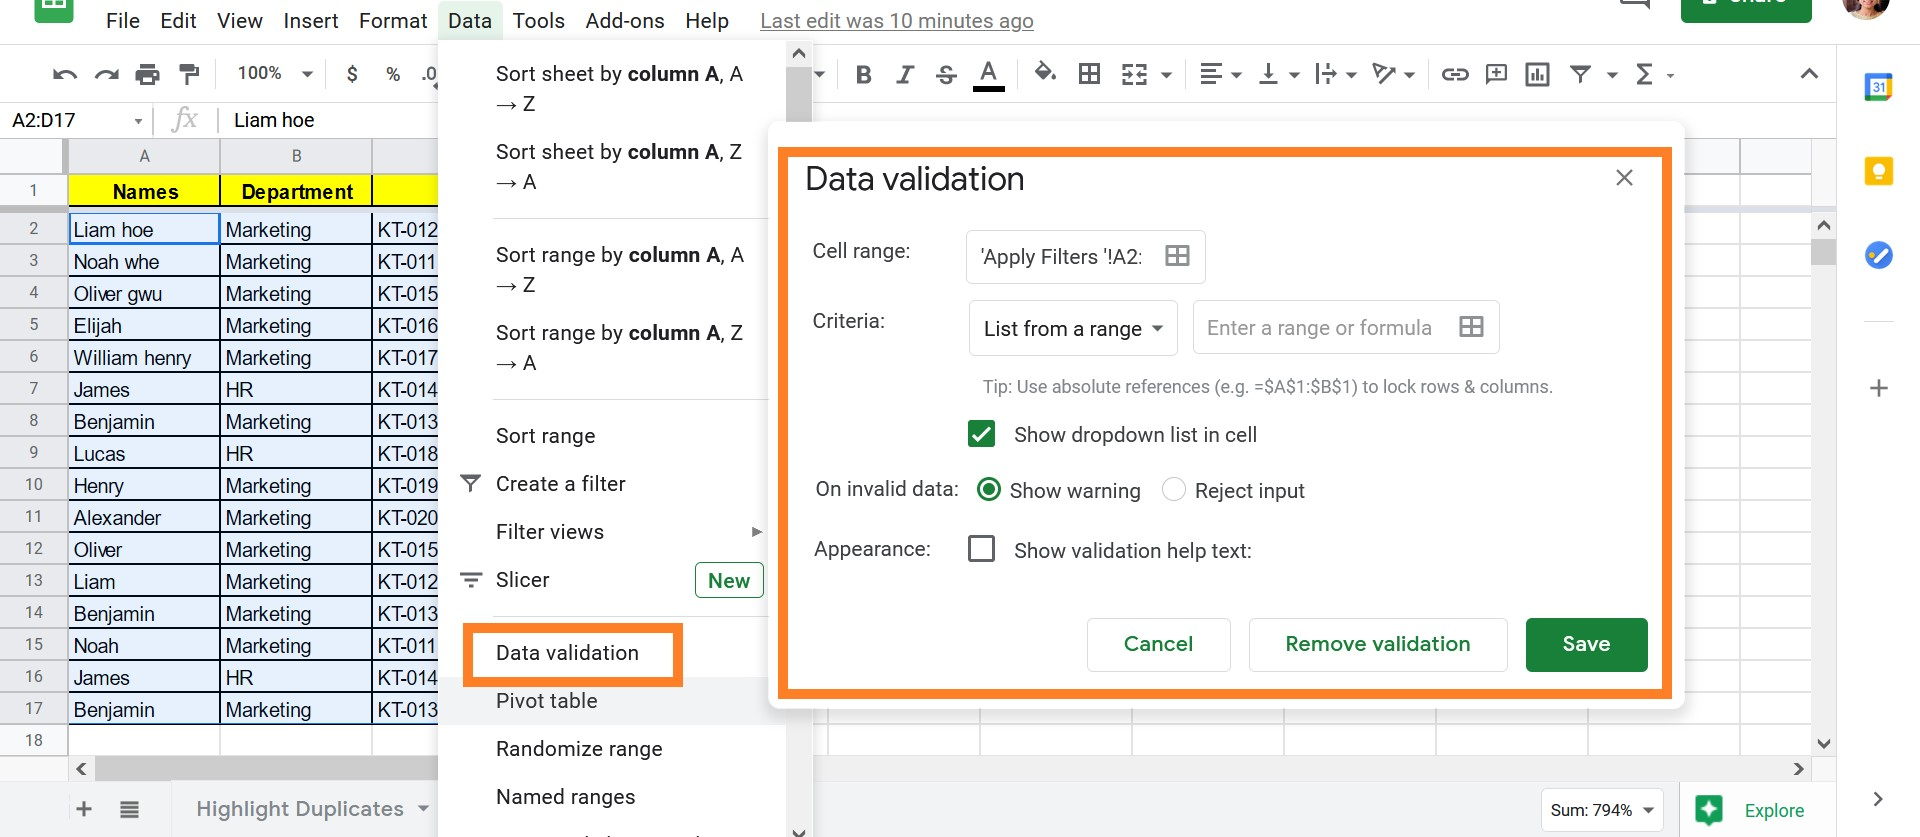 Validate Data in Cells